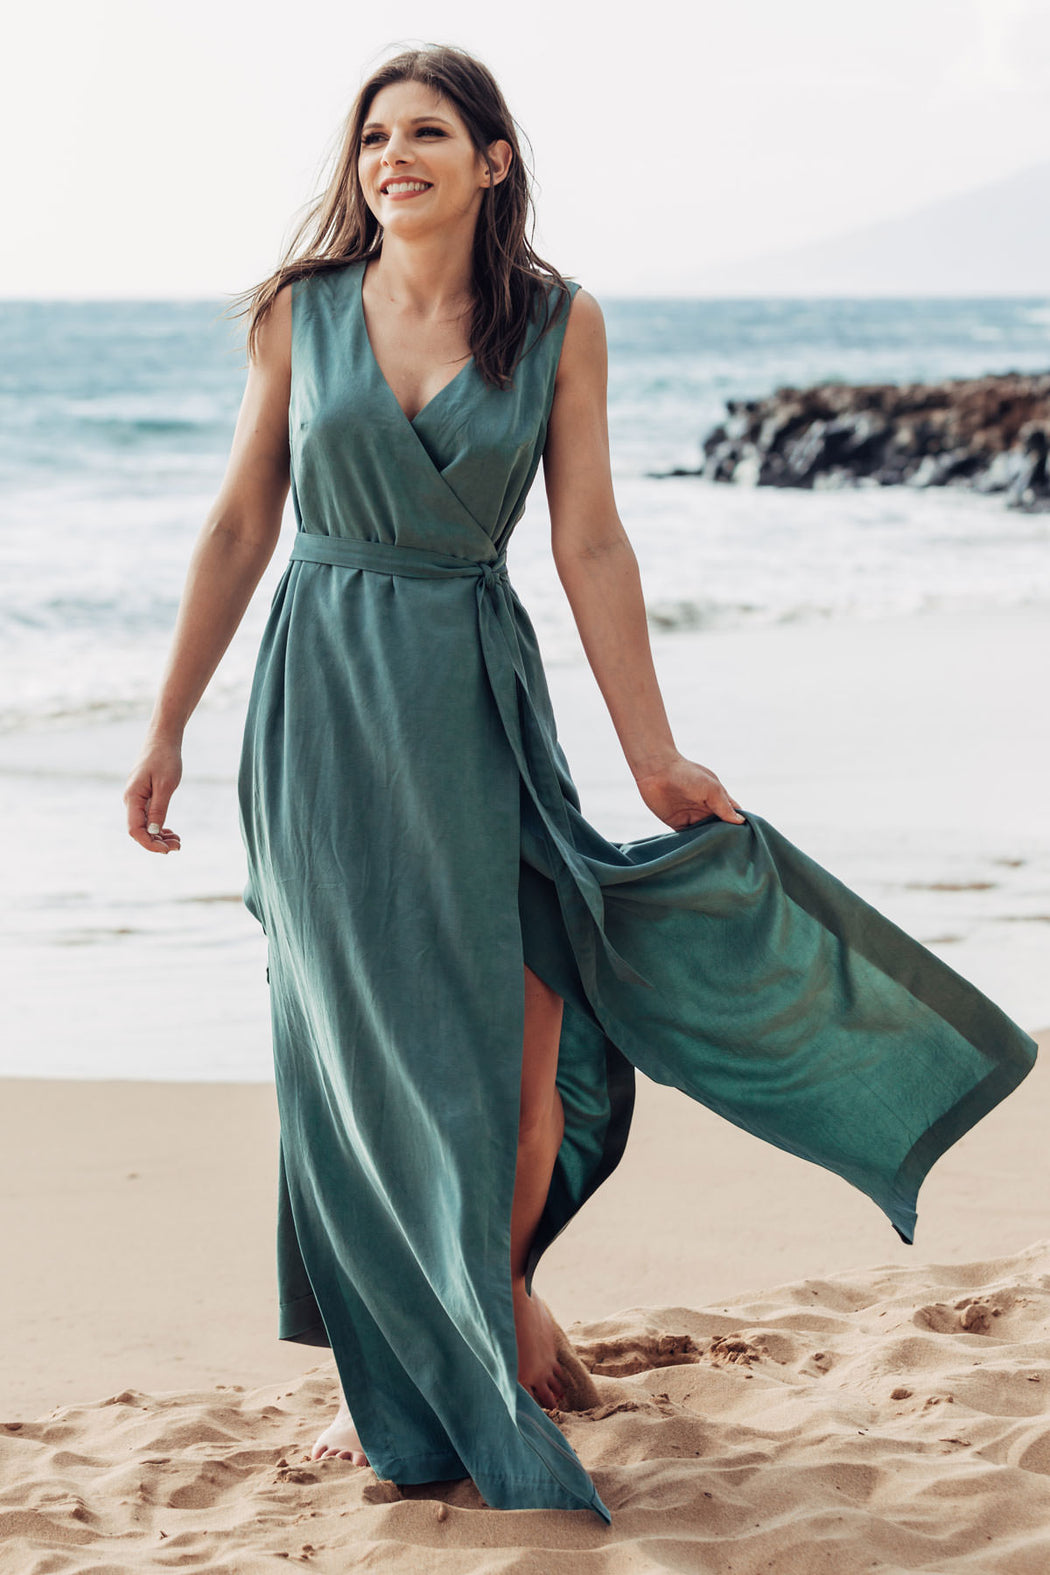 Highlands Wrap Dress Sewing Pattern by Allie Olson